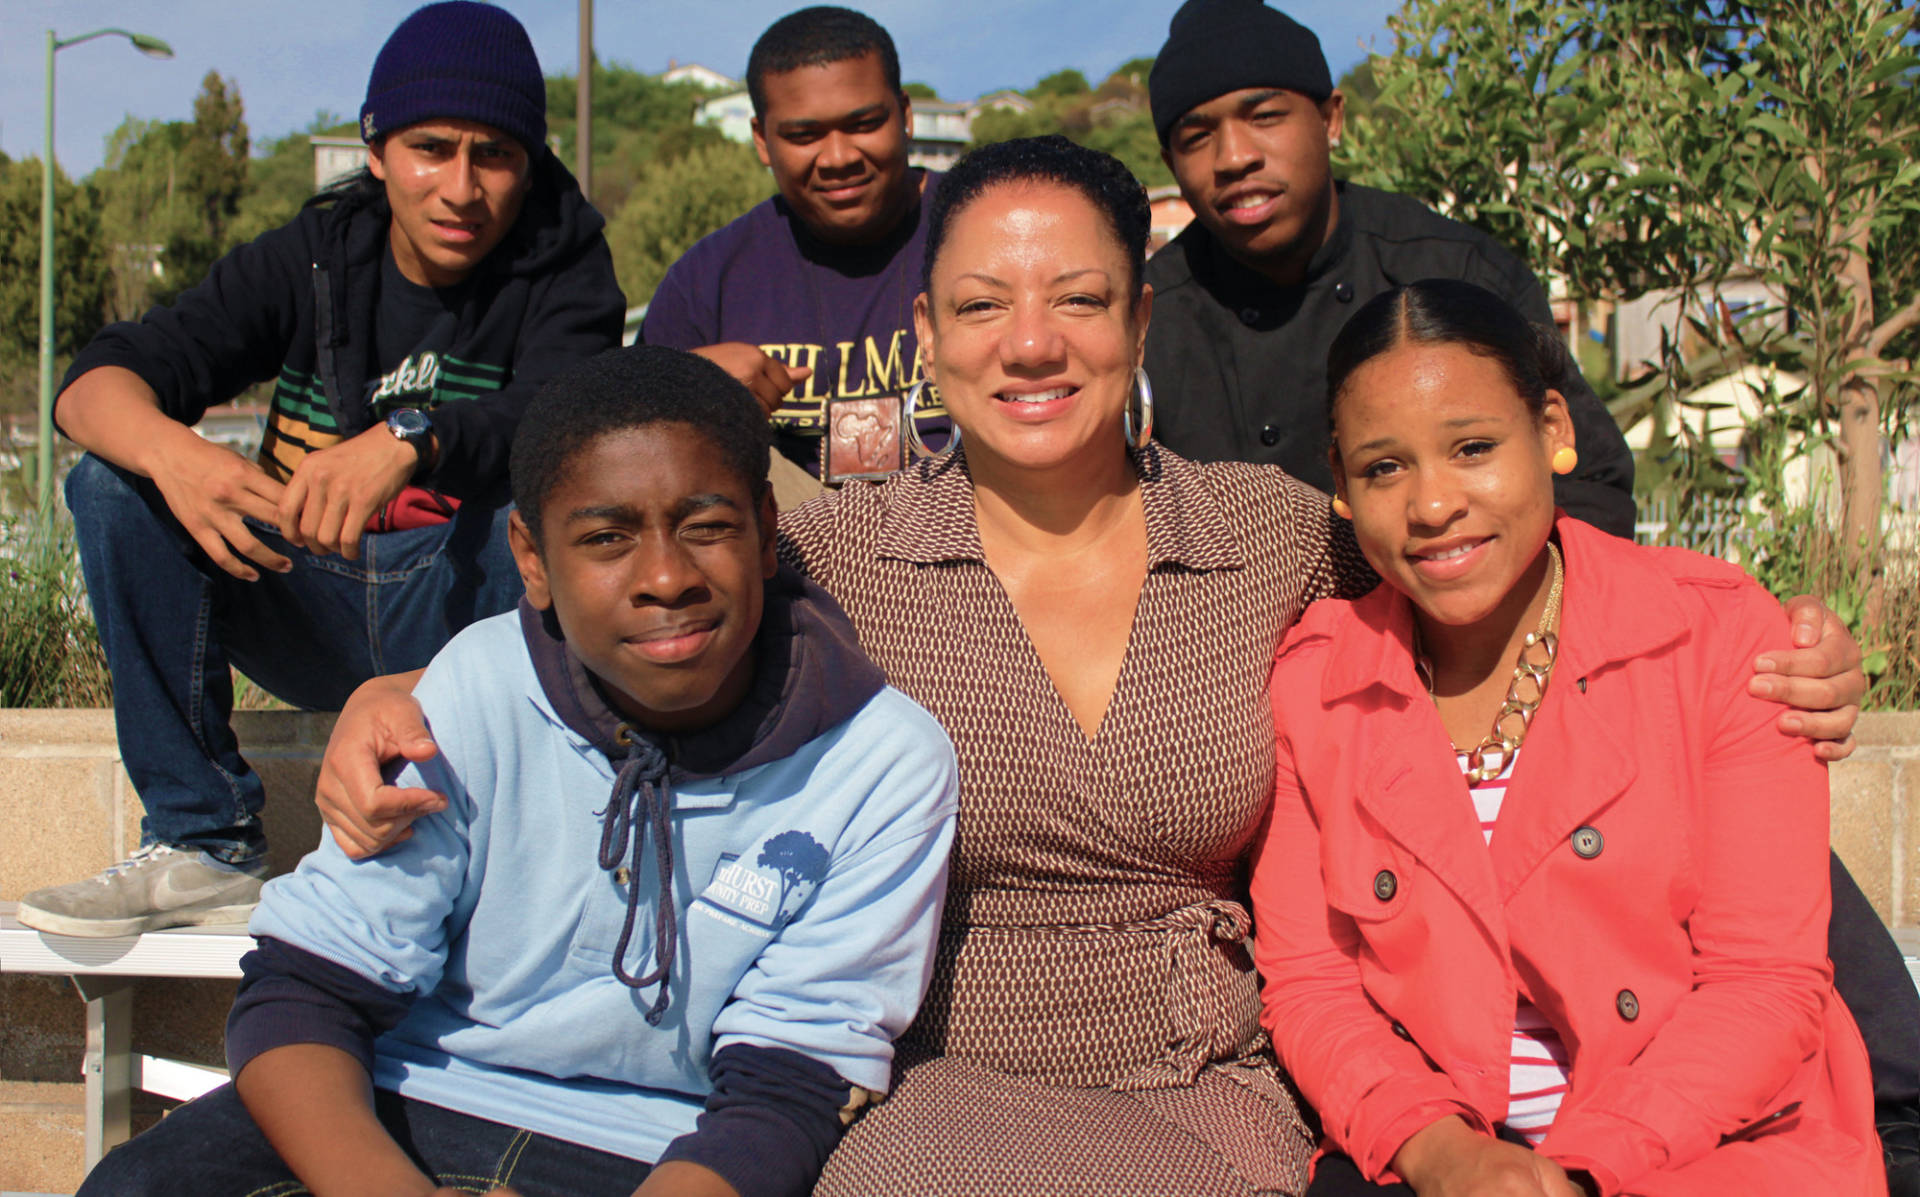 Olis Simmons with members of YouthUprising